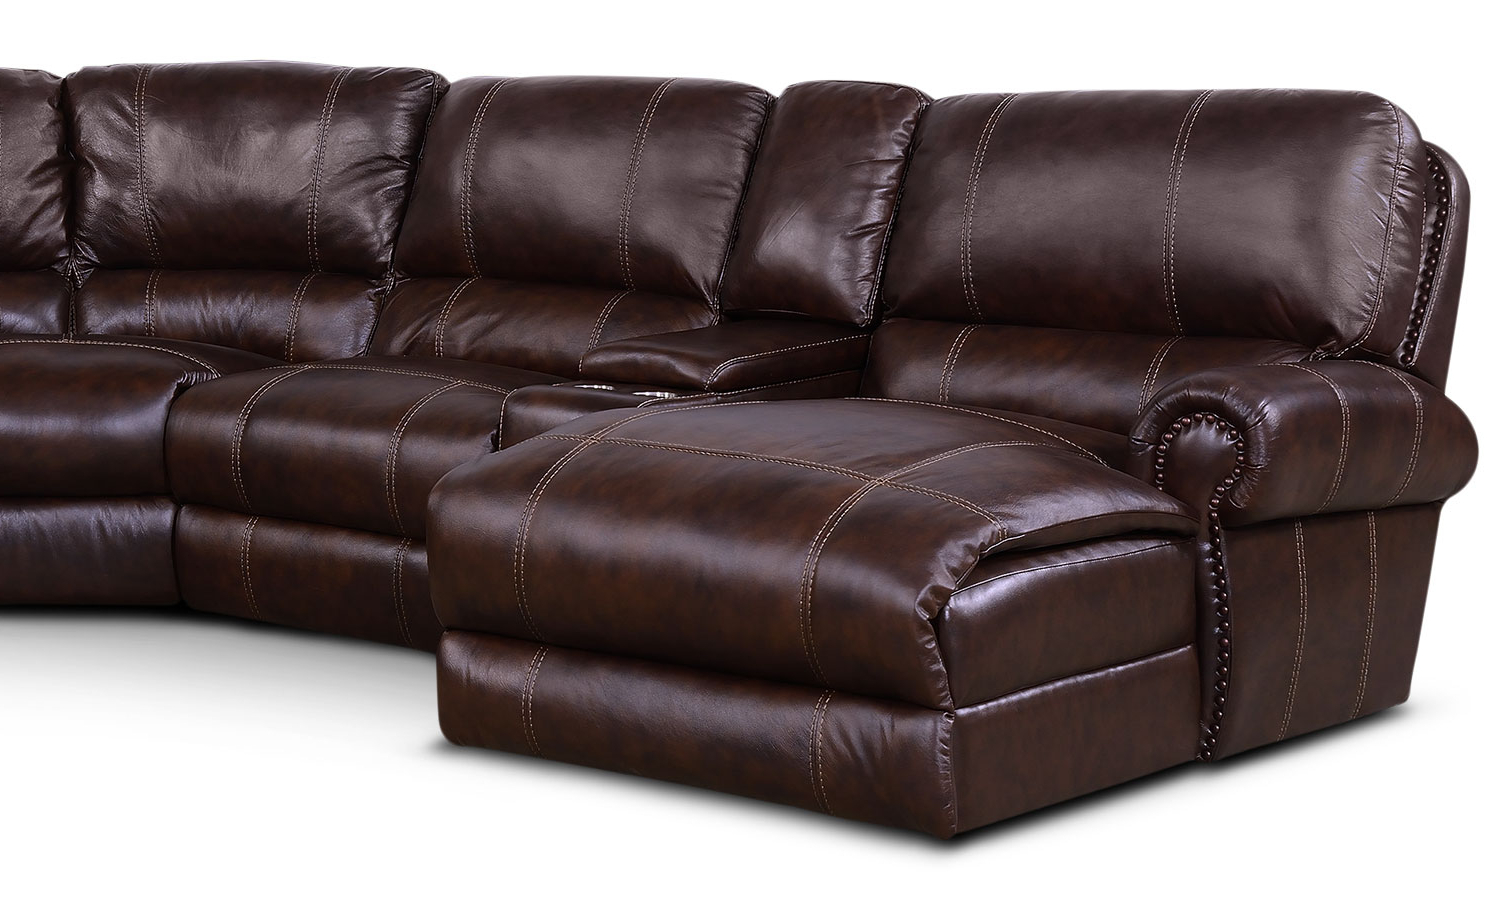 Dartmouth 6 Piece Power Reclining Sectional With 2 Reclining Seats Inside Well Known Norfolk Chocolate 6 Piece Sectionals With Laf Chaise (View 8 of 20)